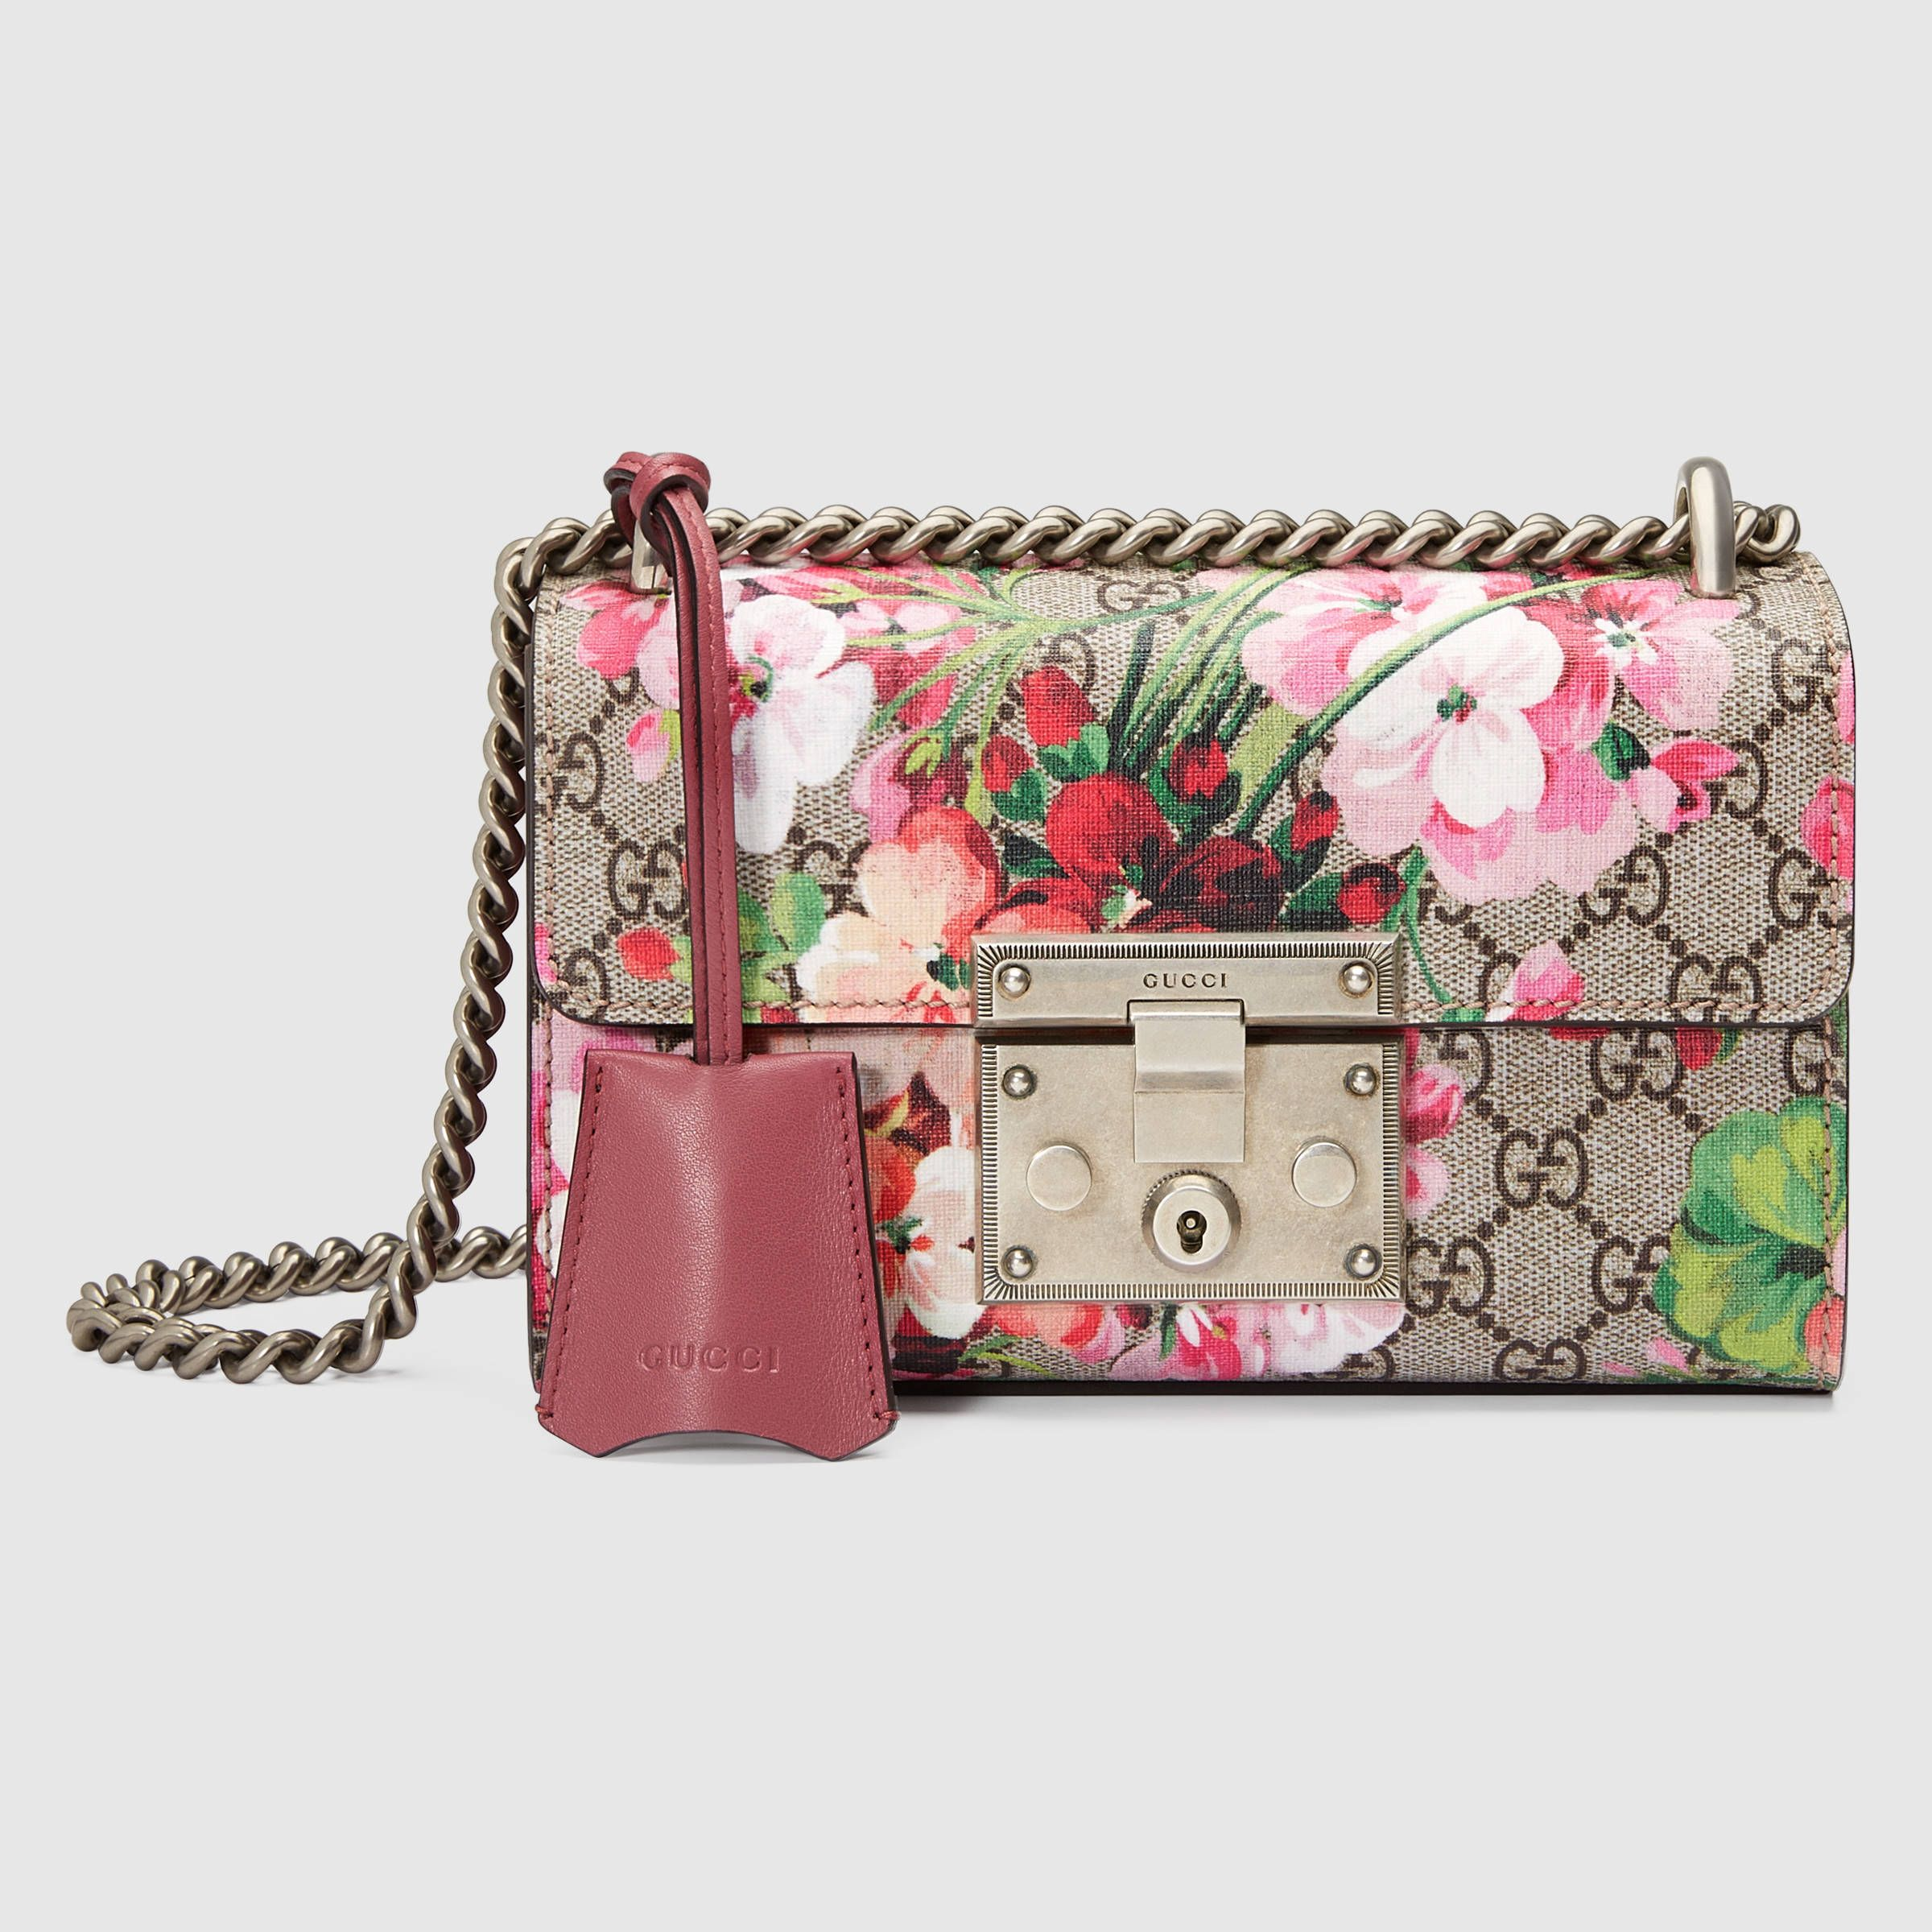 6b75726cc8e Gucci Women - Padlock Blooms shoulder bag - 409487KU2IN8693